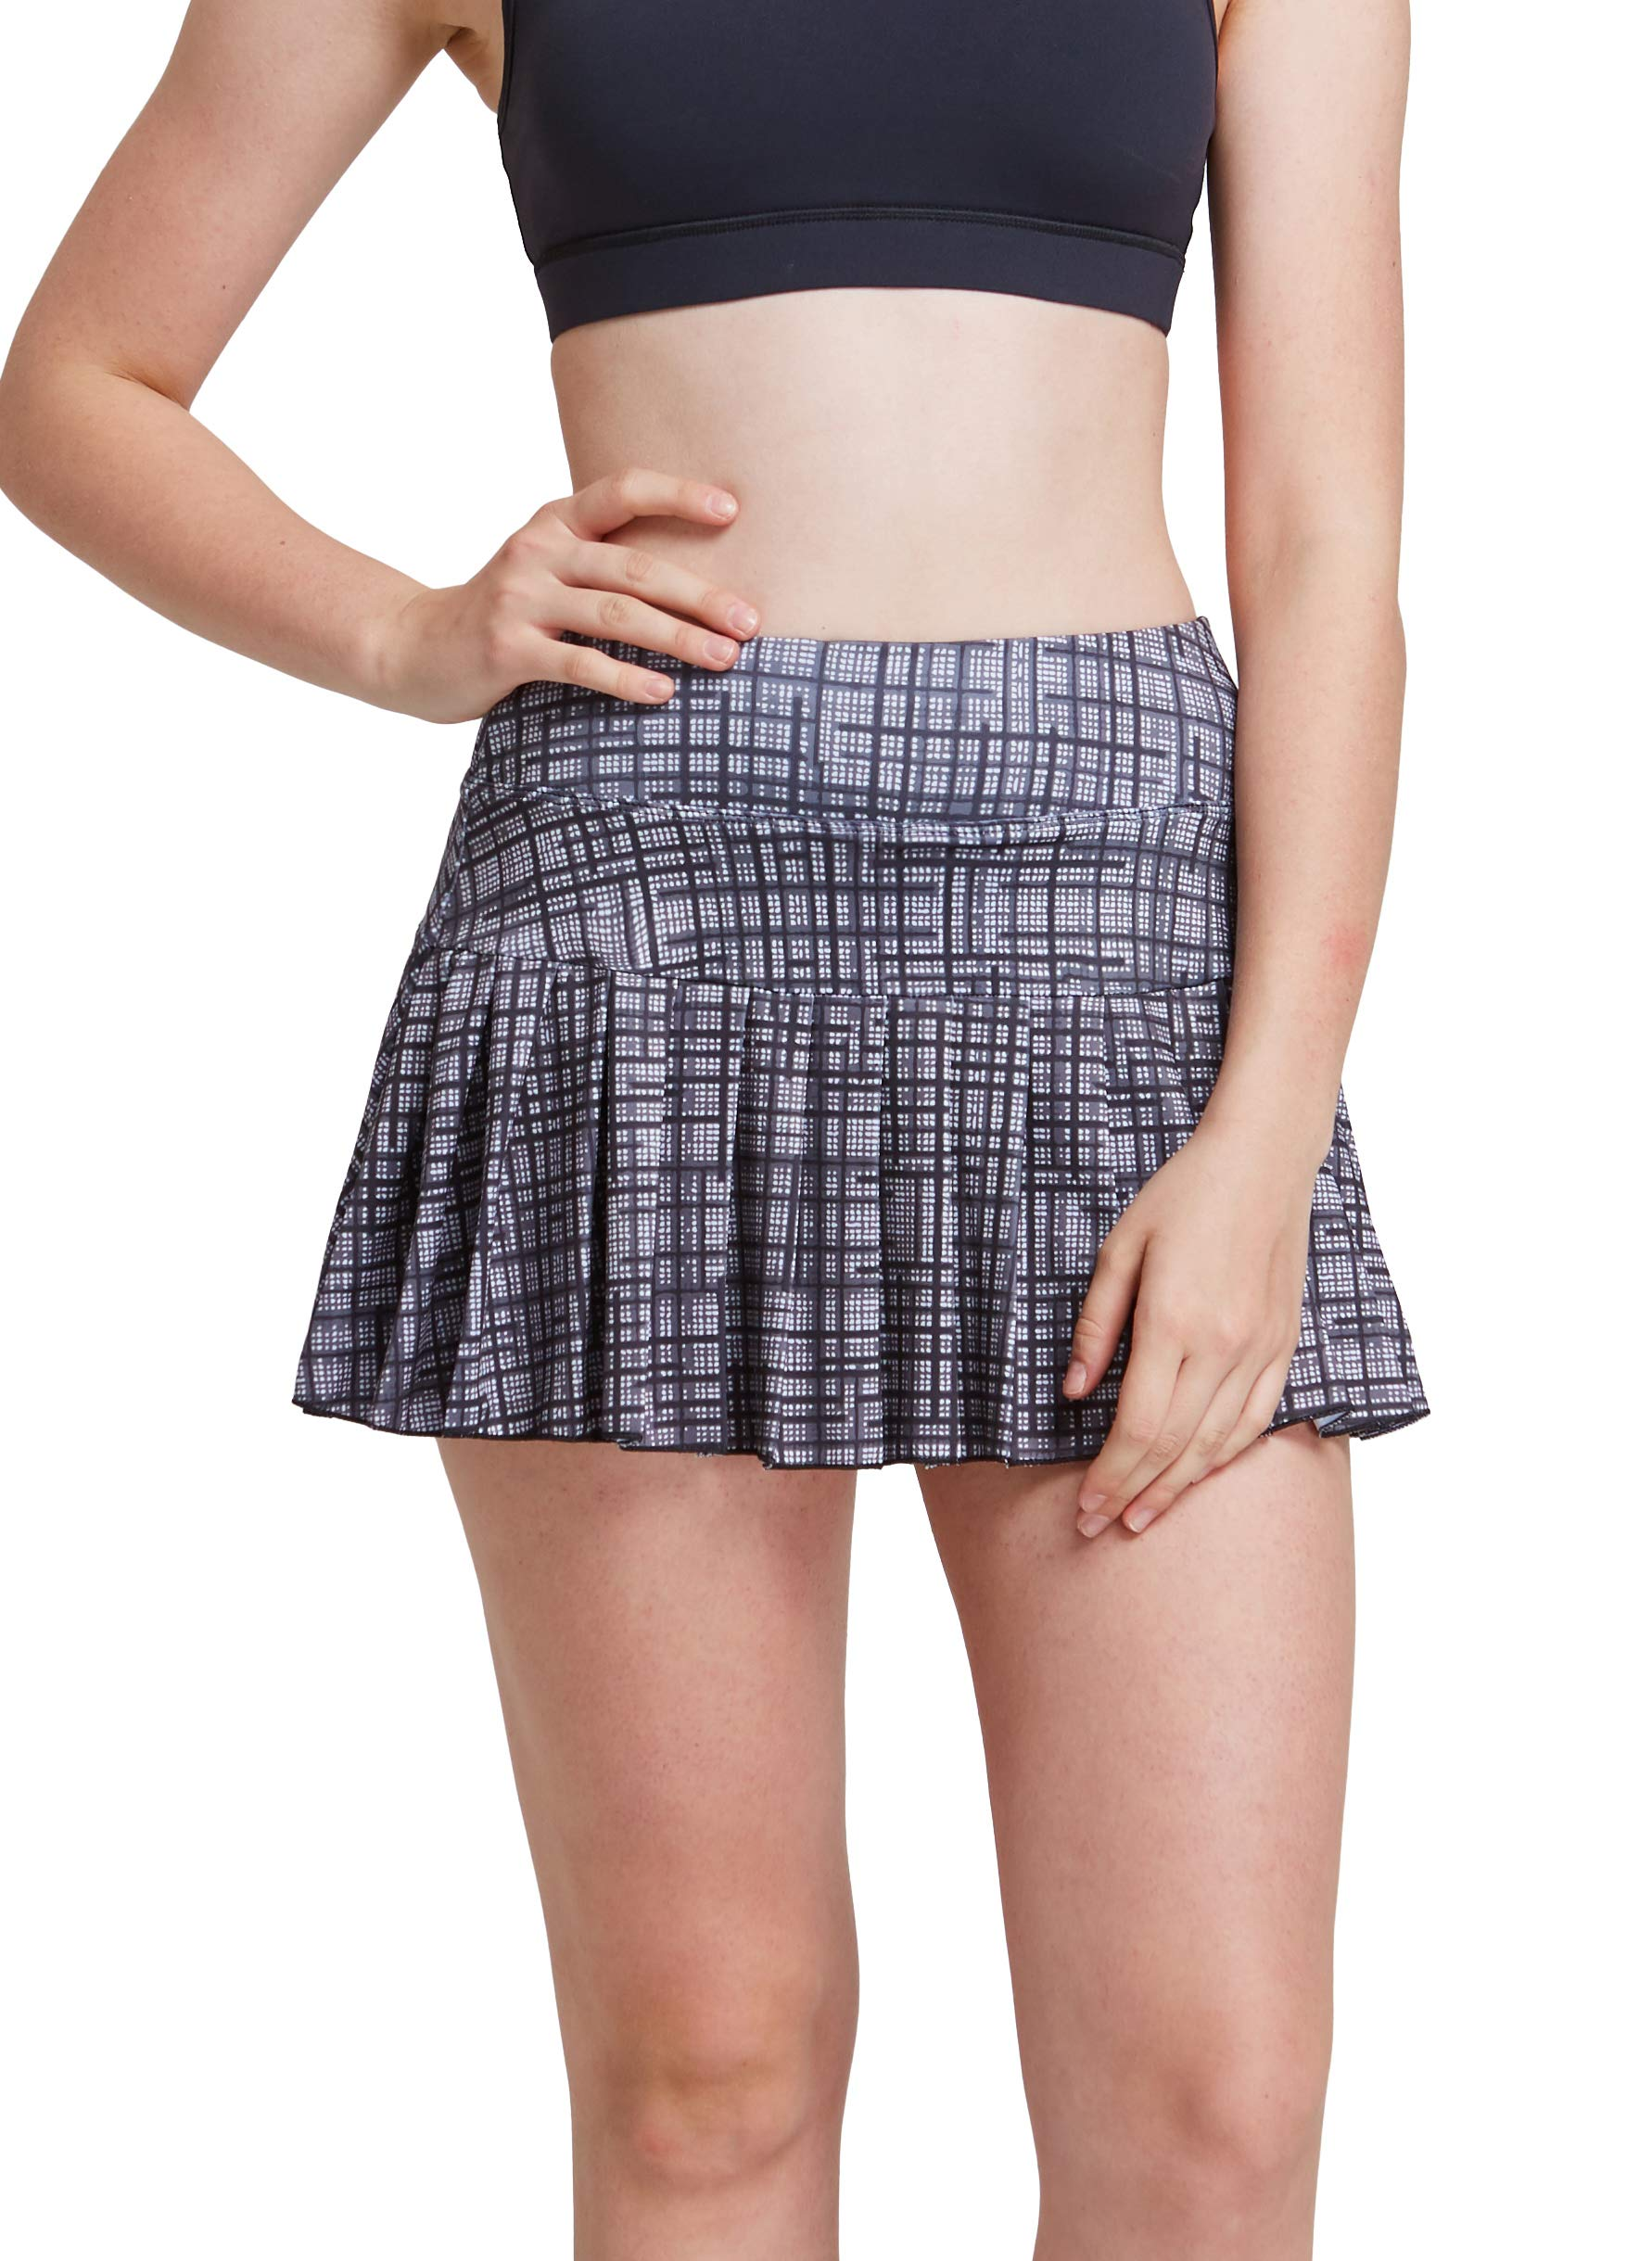 Womens Tennis Pleated Skorts Golf Workout High Waist Biult in Skirts Sports Active Wear with Pockets by HonourSex